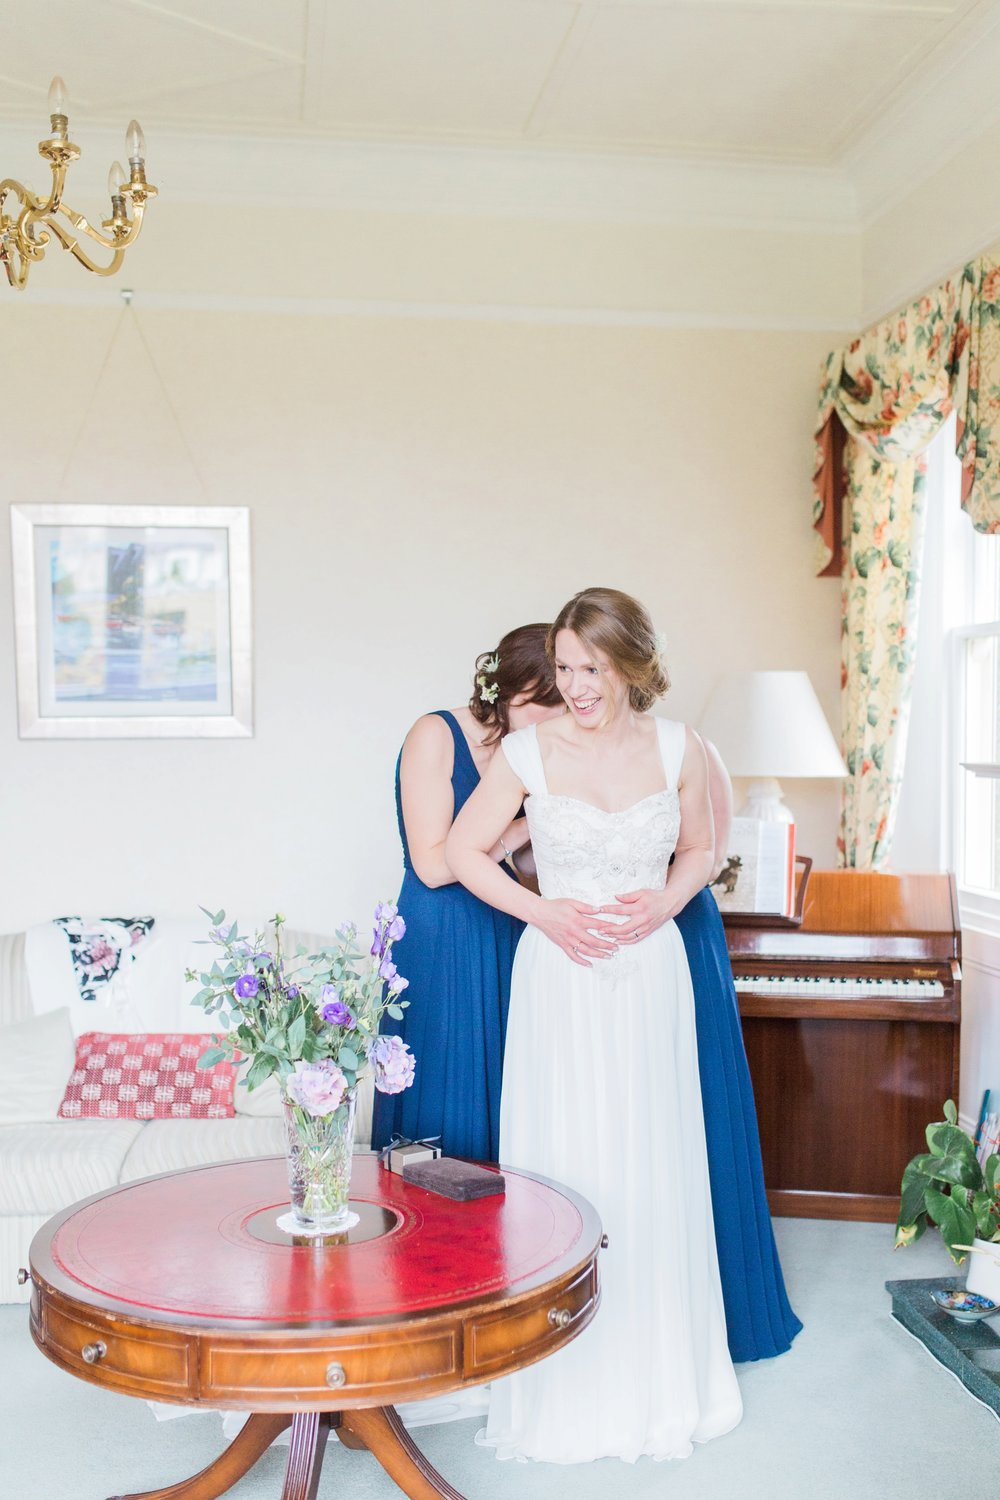 Suzanne_li_photography_kirknewton_wedding_0015.jpg